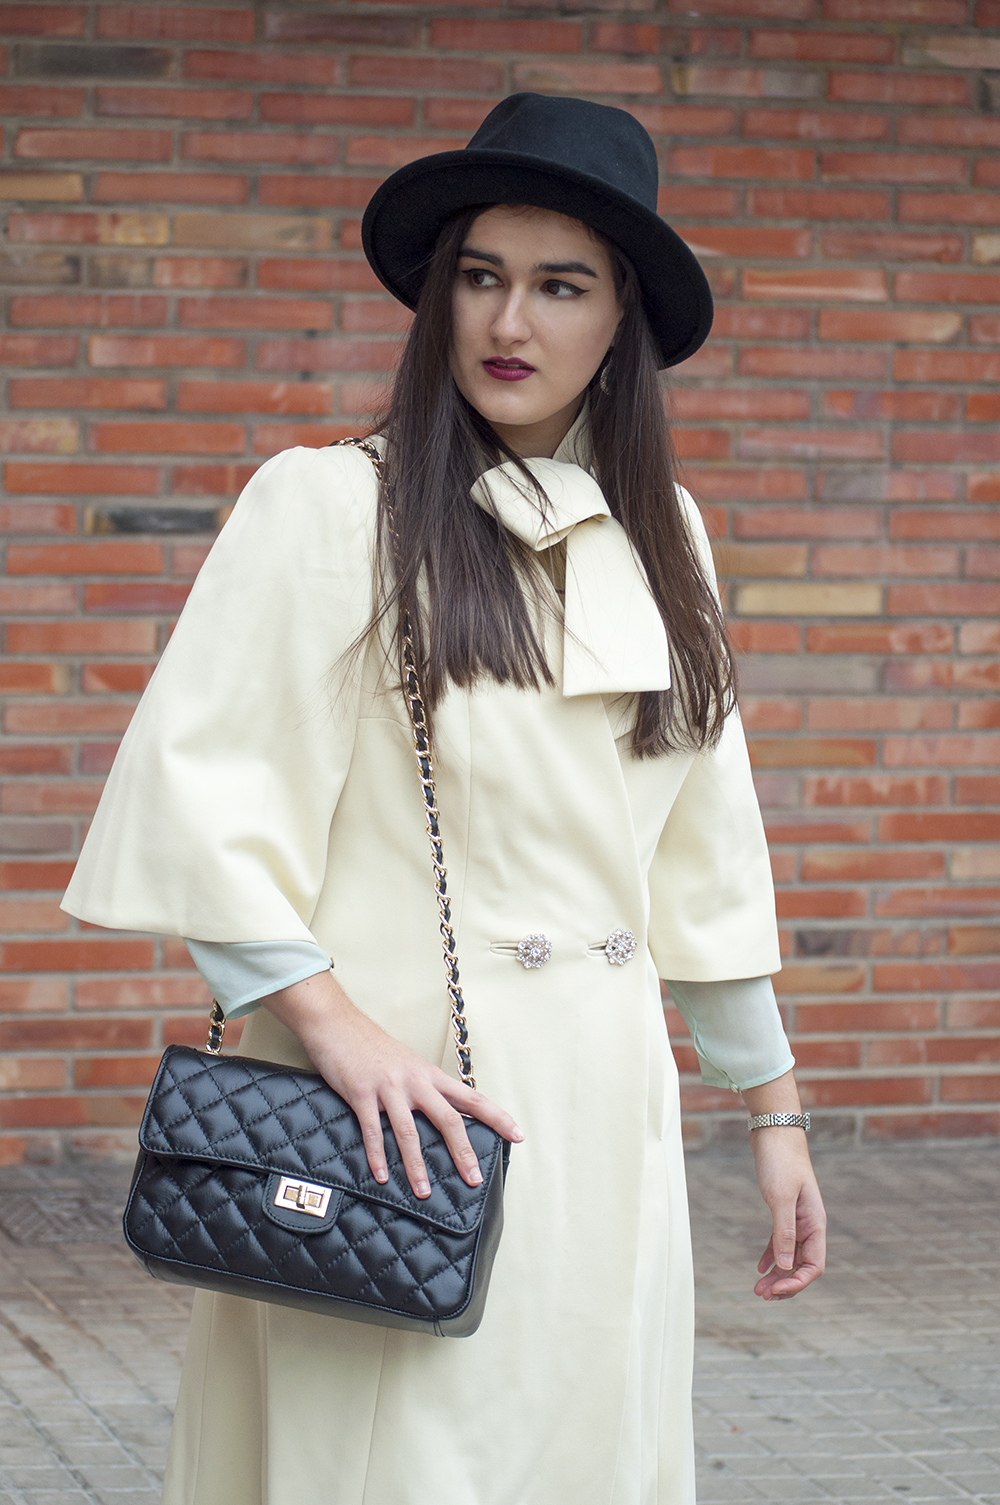 somethingfashion blogger vintage outfit valencia VLC spain, la sra henderson white coat, revamp antique old fashion clothes DIY how to